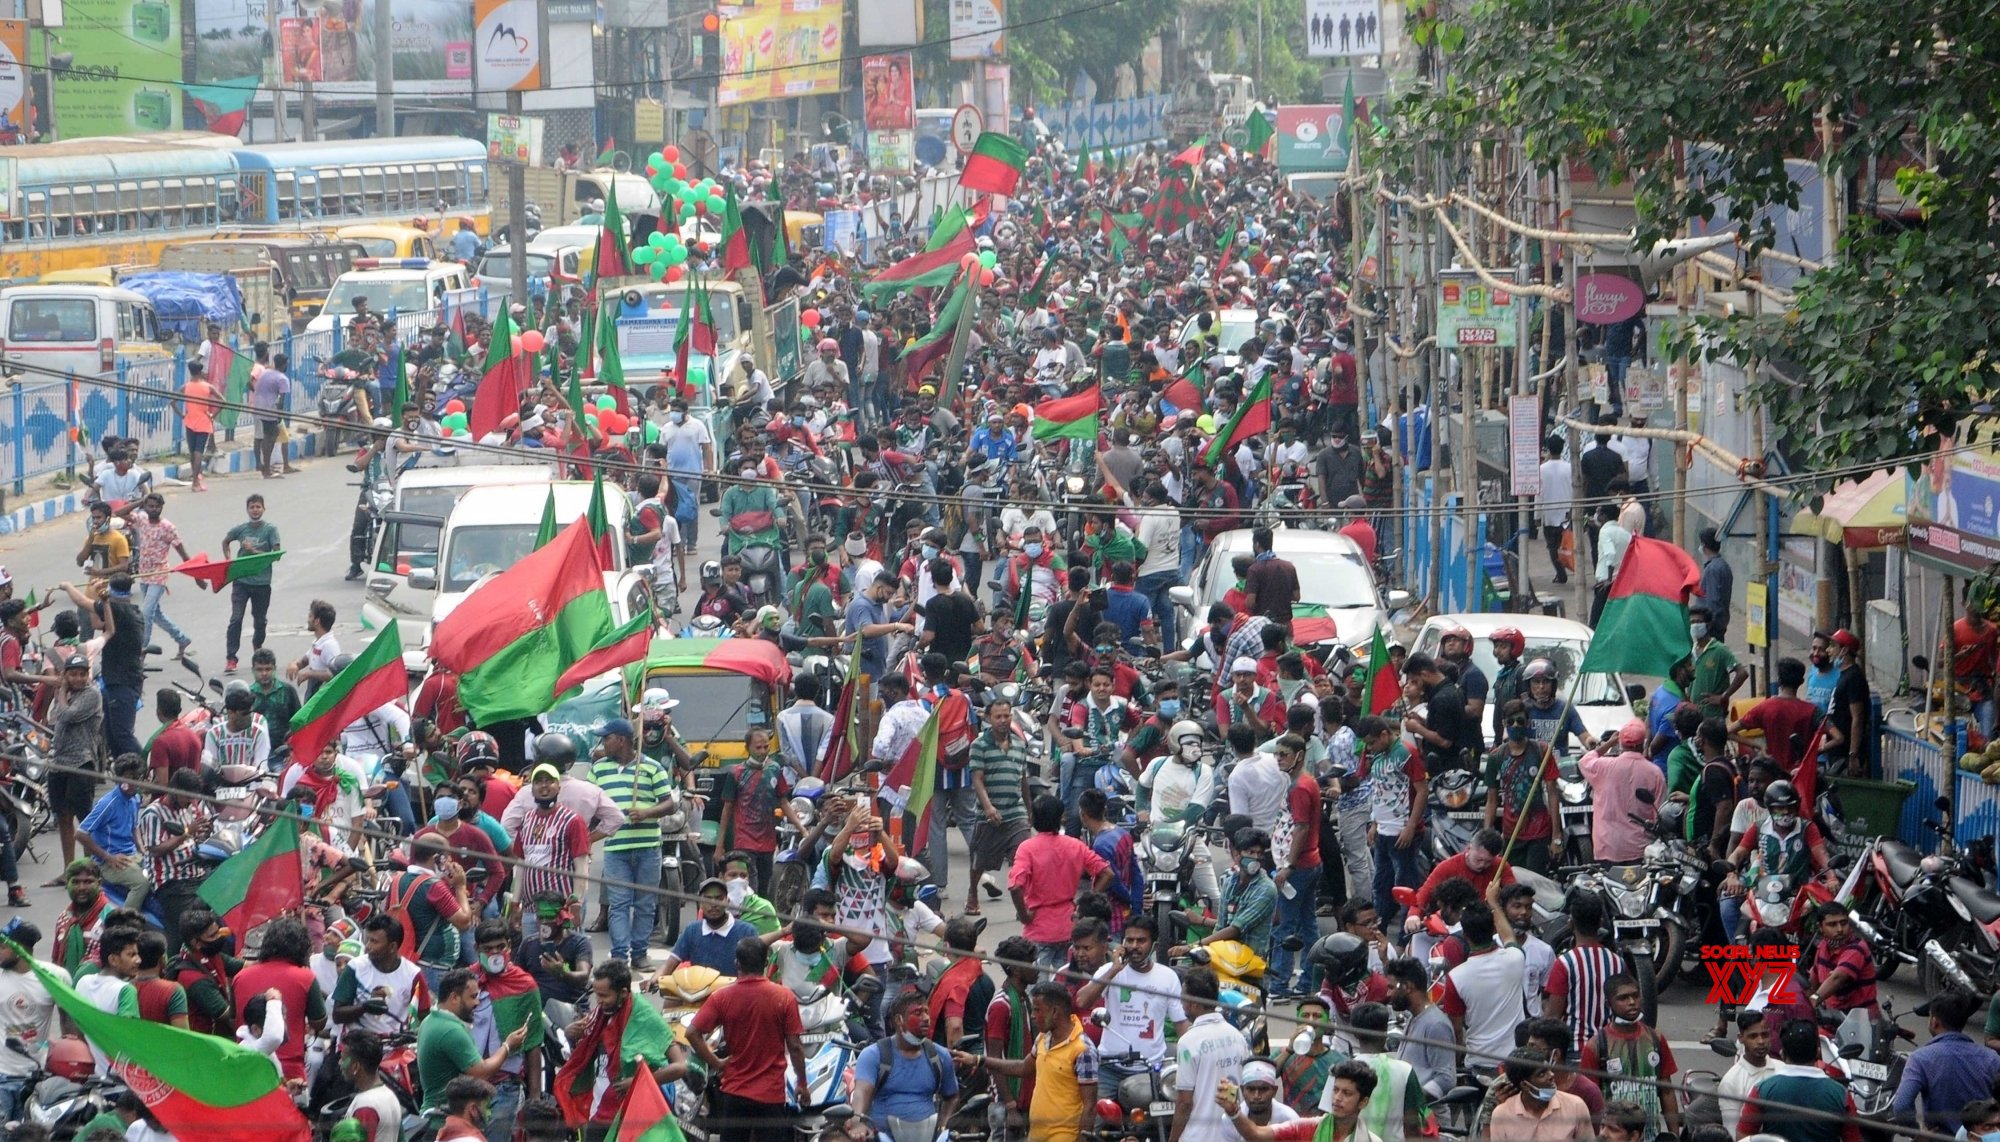 Kolkata: Mohun Bagan Football Club supporters hold a victory rally from Hotel Hyatt to Mohun Bagan Ground #Gallery